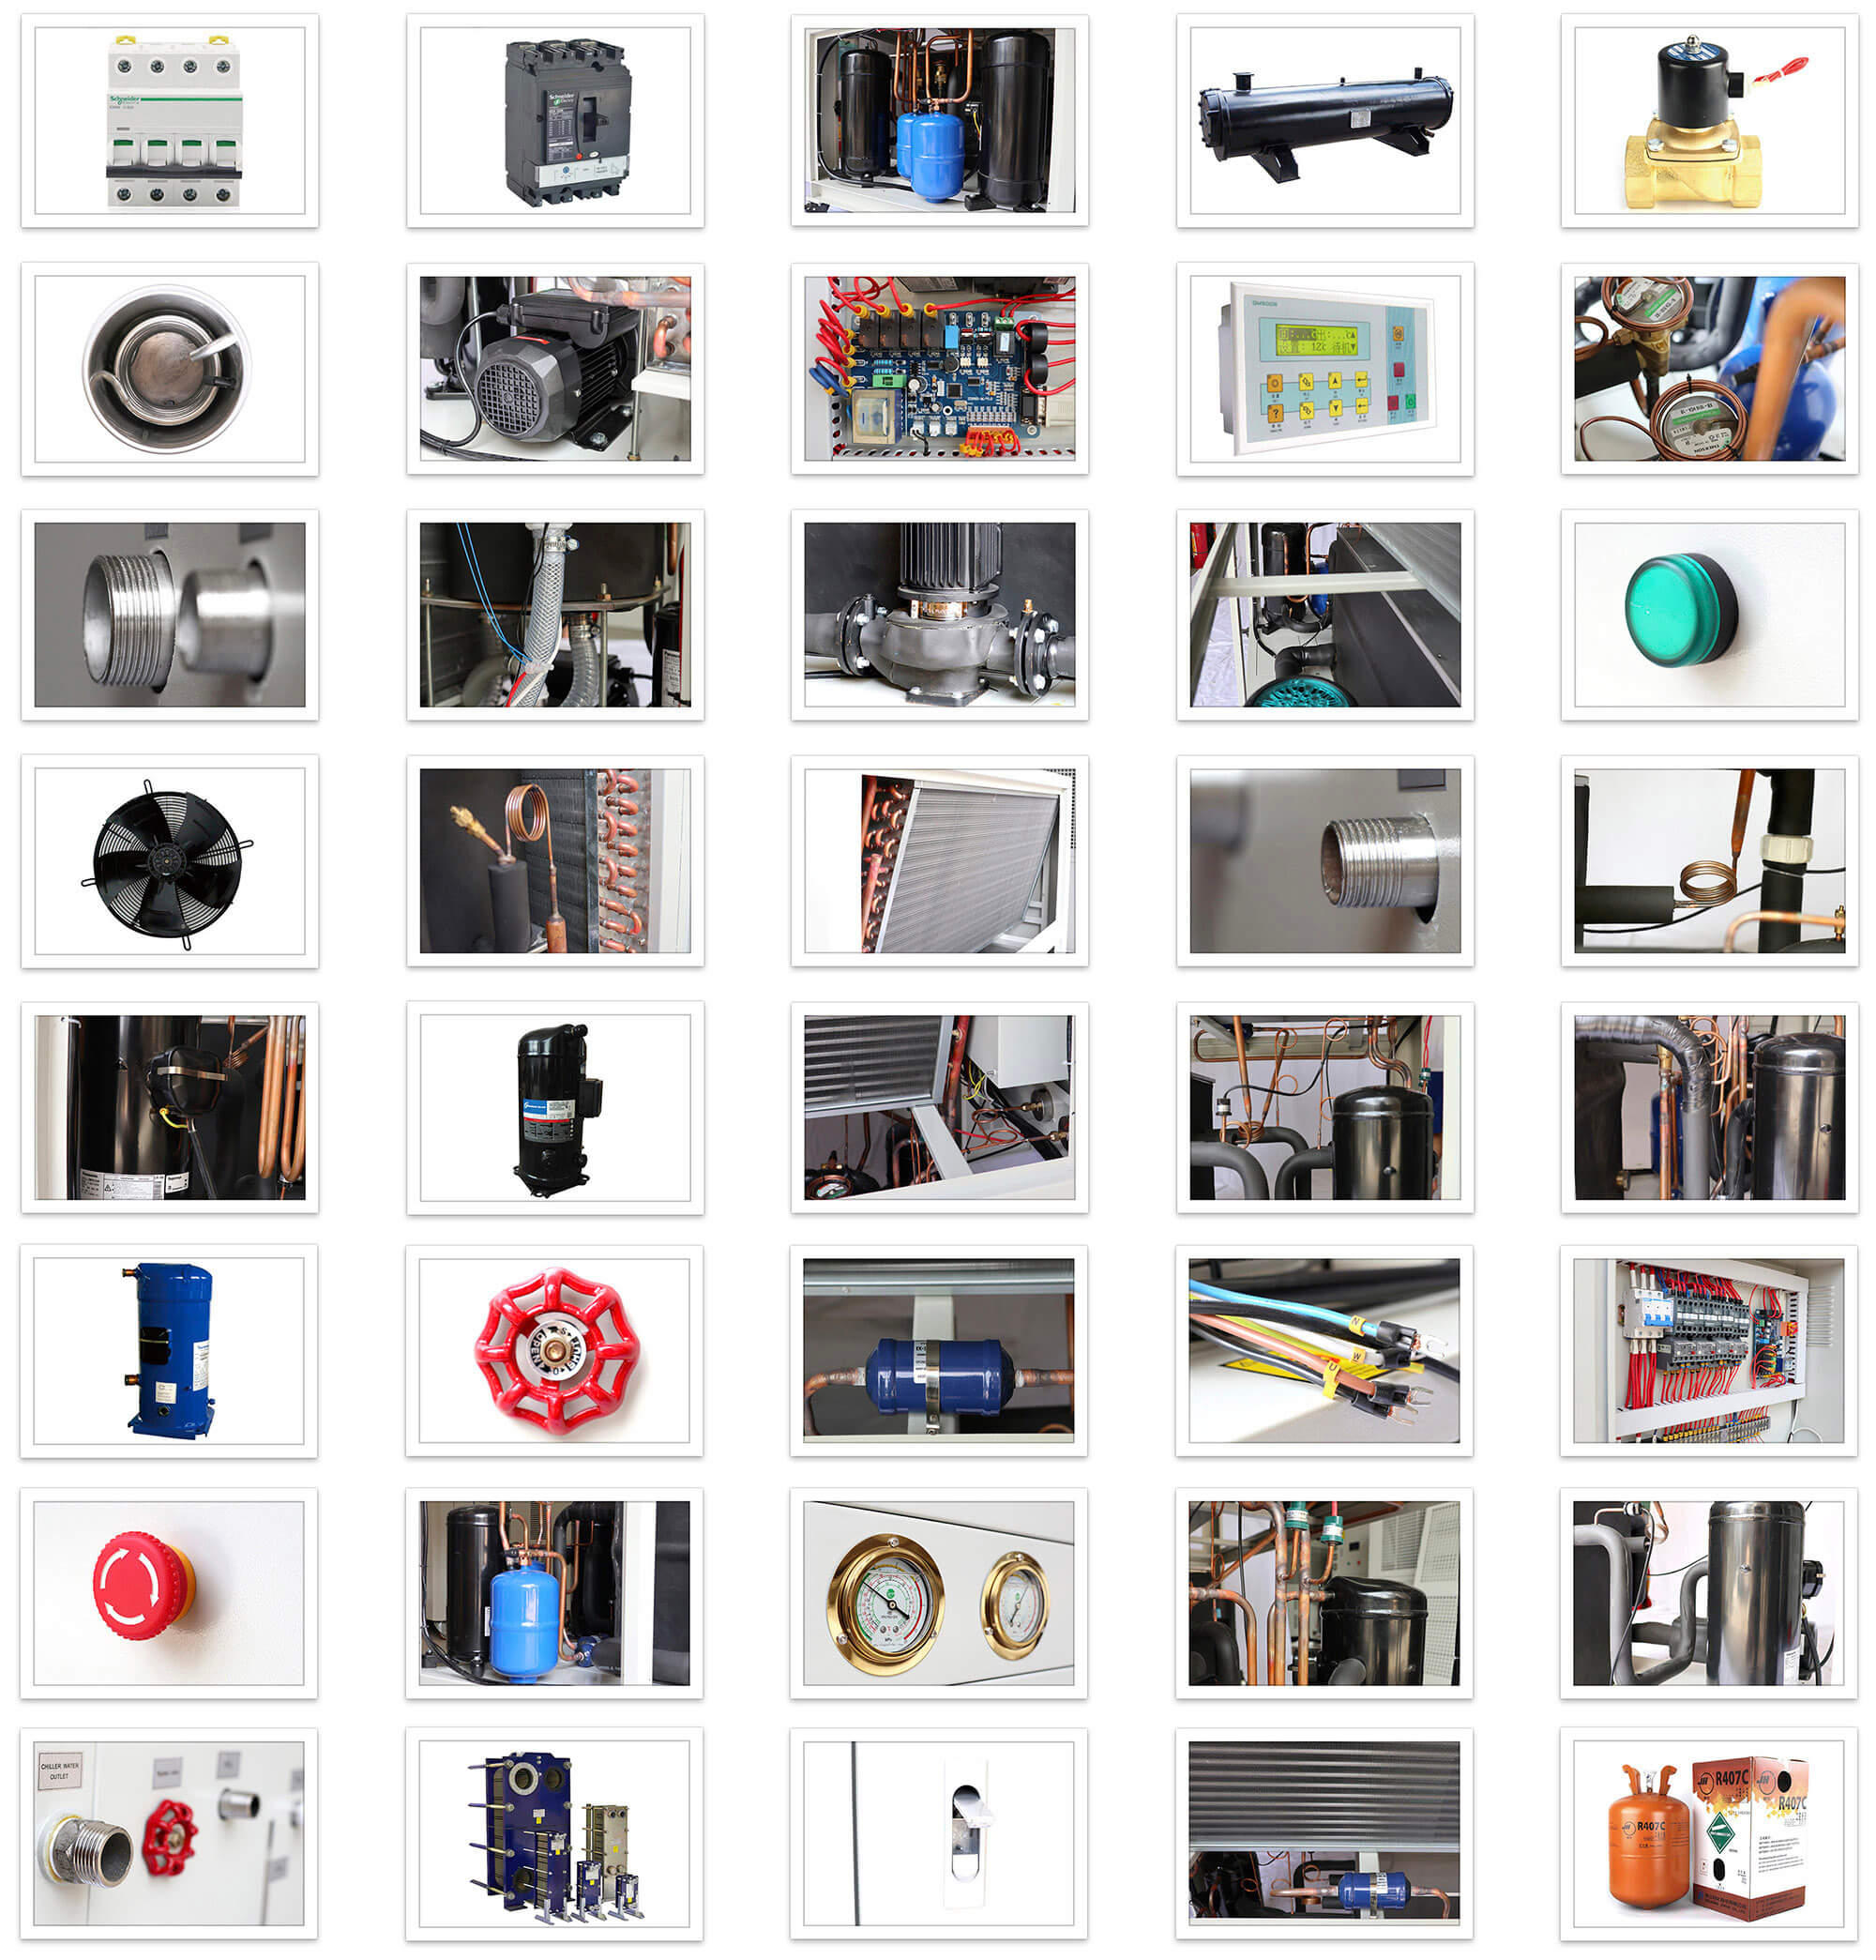 Air Chiller spare parts